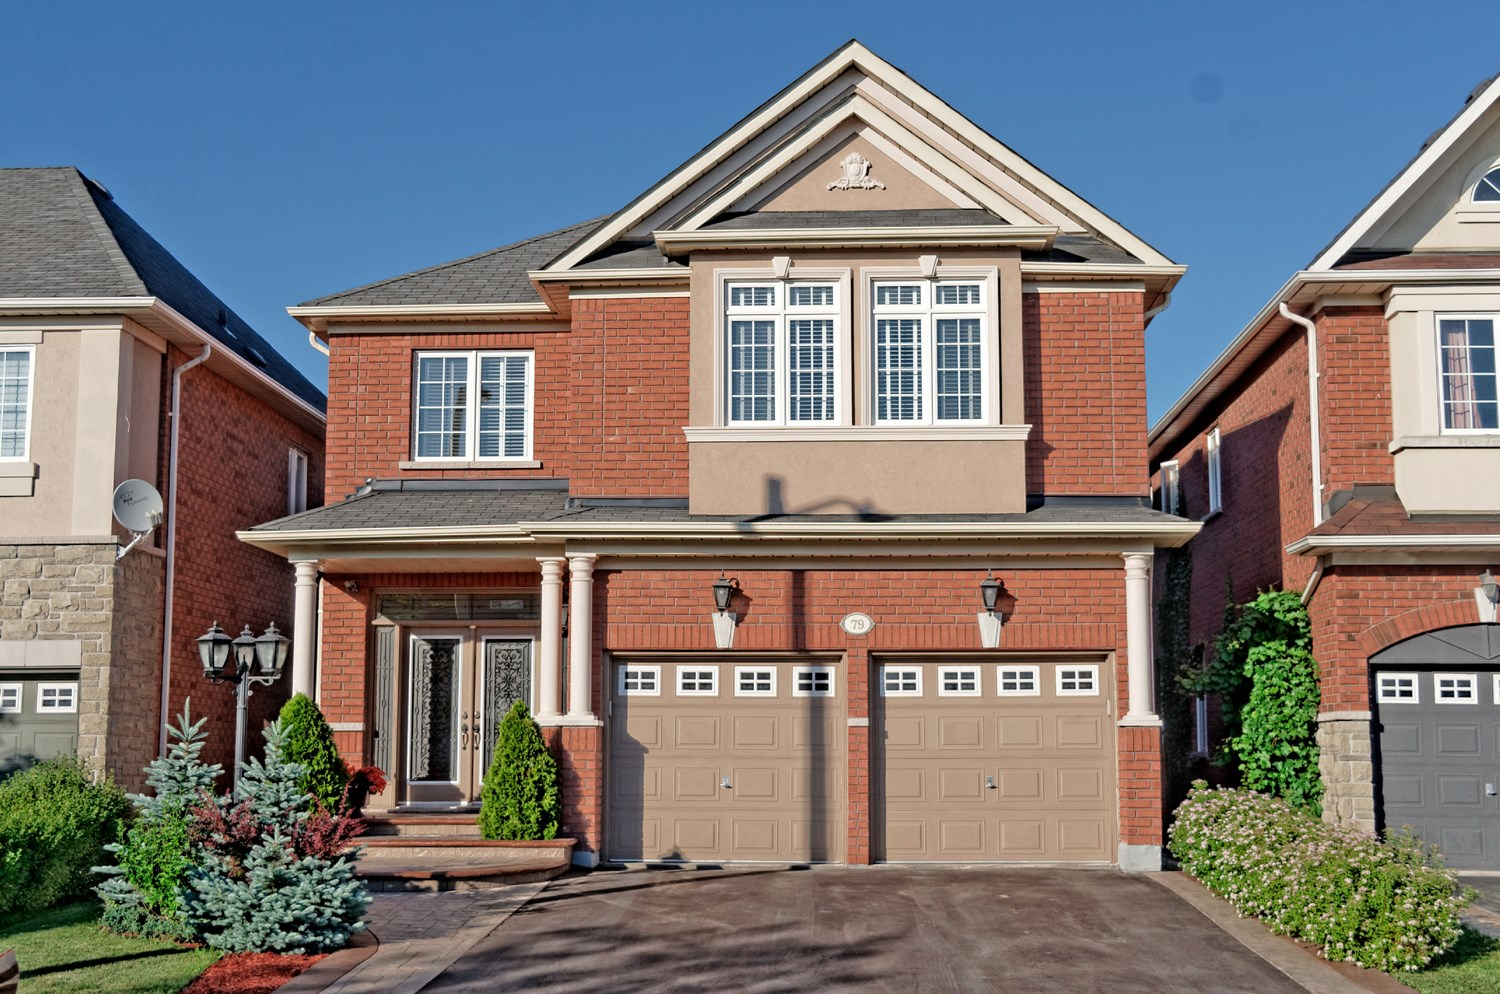 JUST SOLD IN THORNHILL WOODS 79 KNIGHTSHADE DR